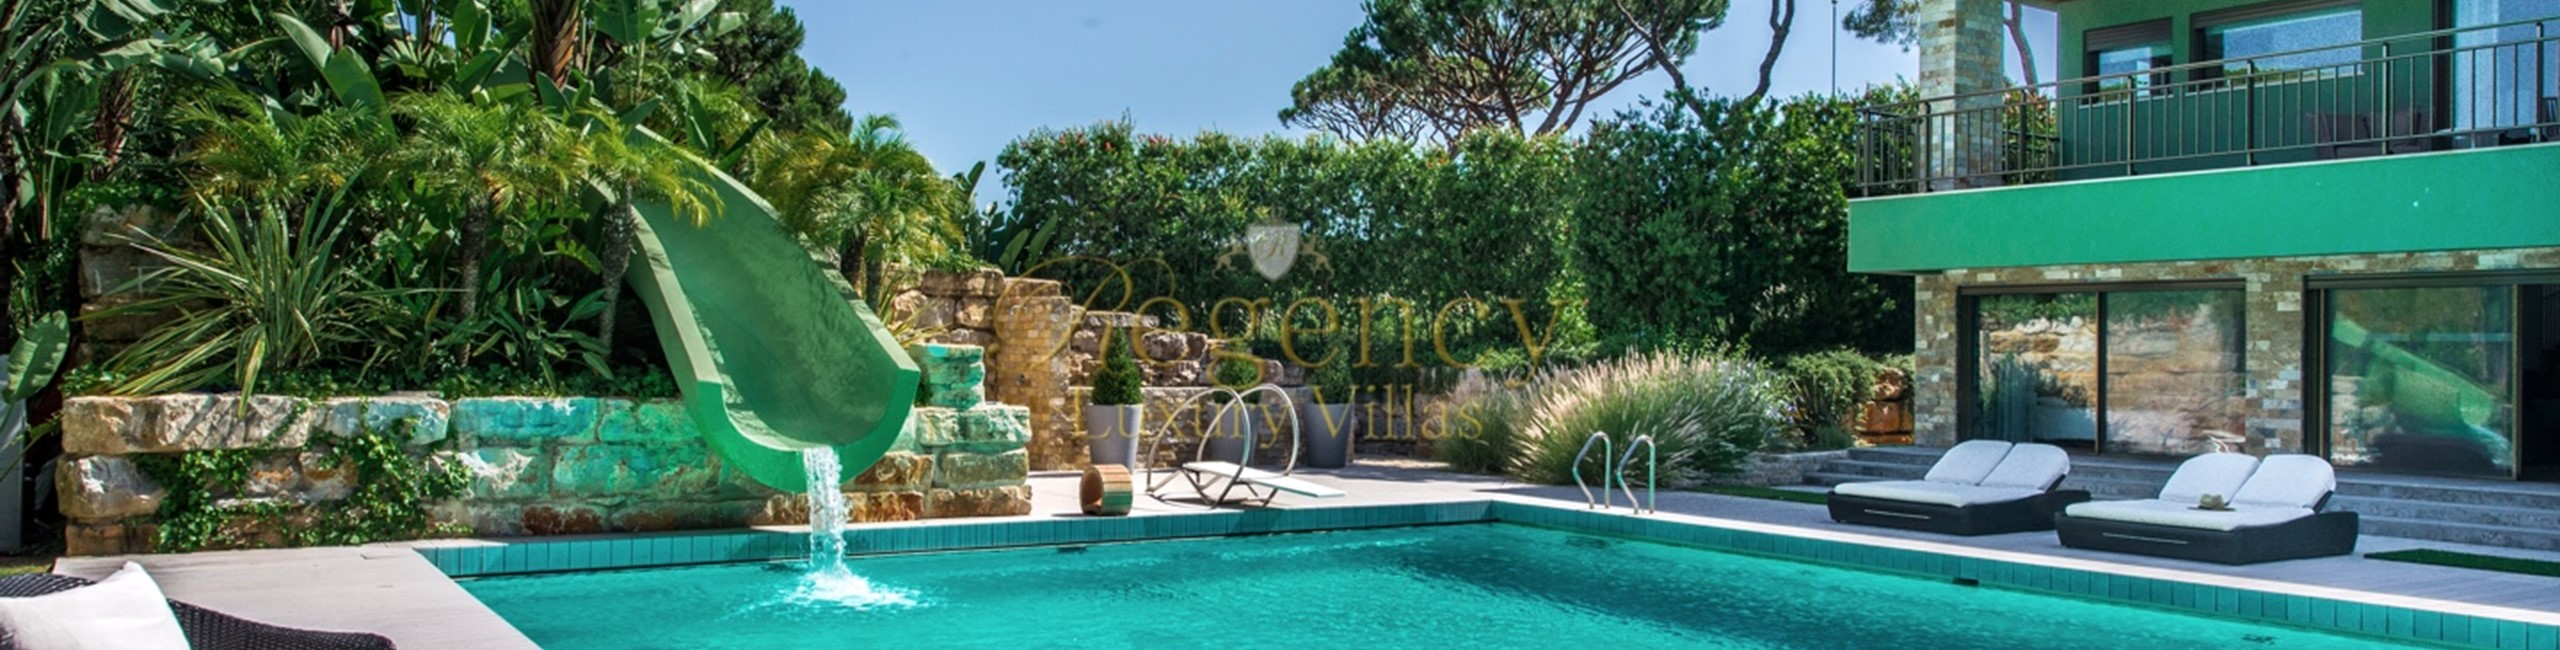 Luxury Modern Villa With Pool And Playground To Rent In Vilamoura